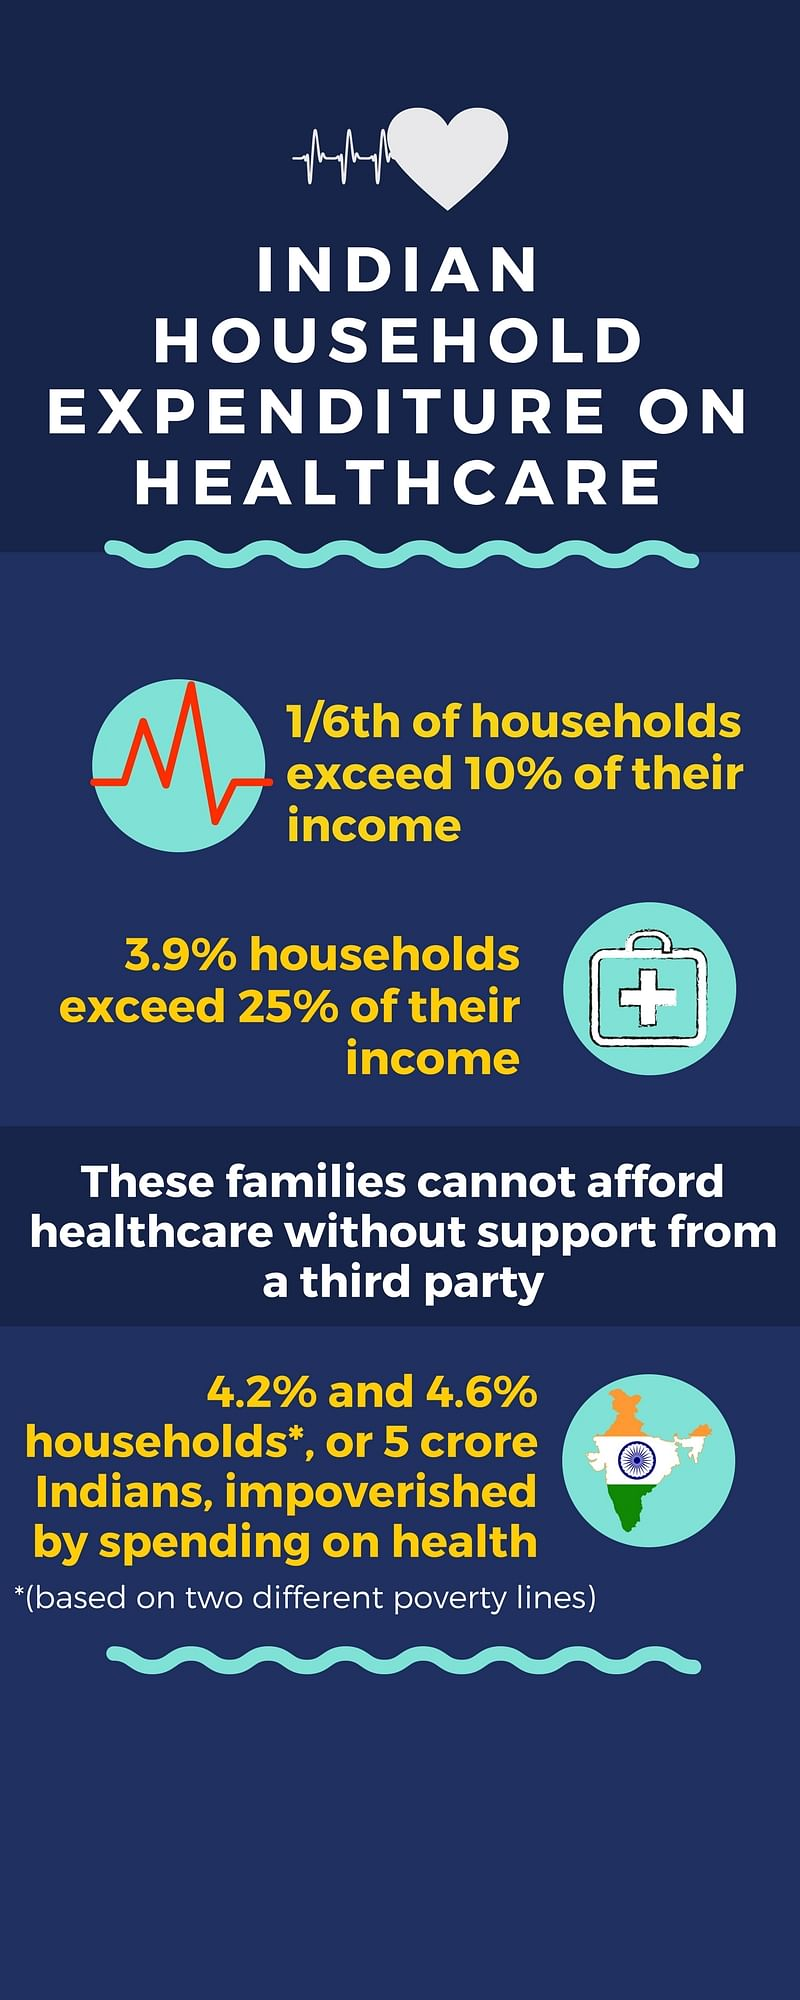 Unaffordable Healthcare Pushes Nearly 5 Crore Indians Into Poverty